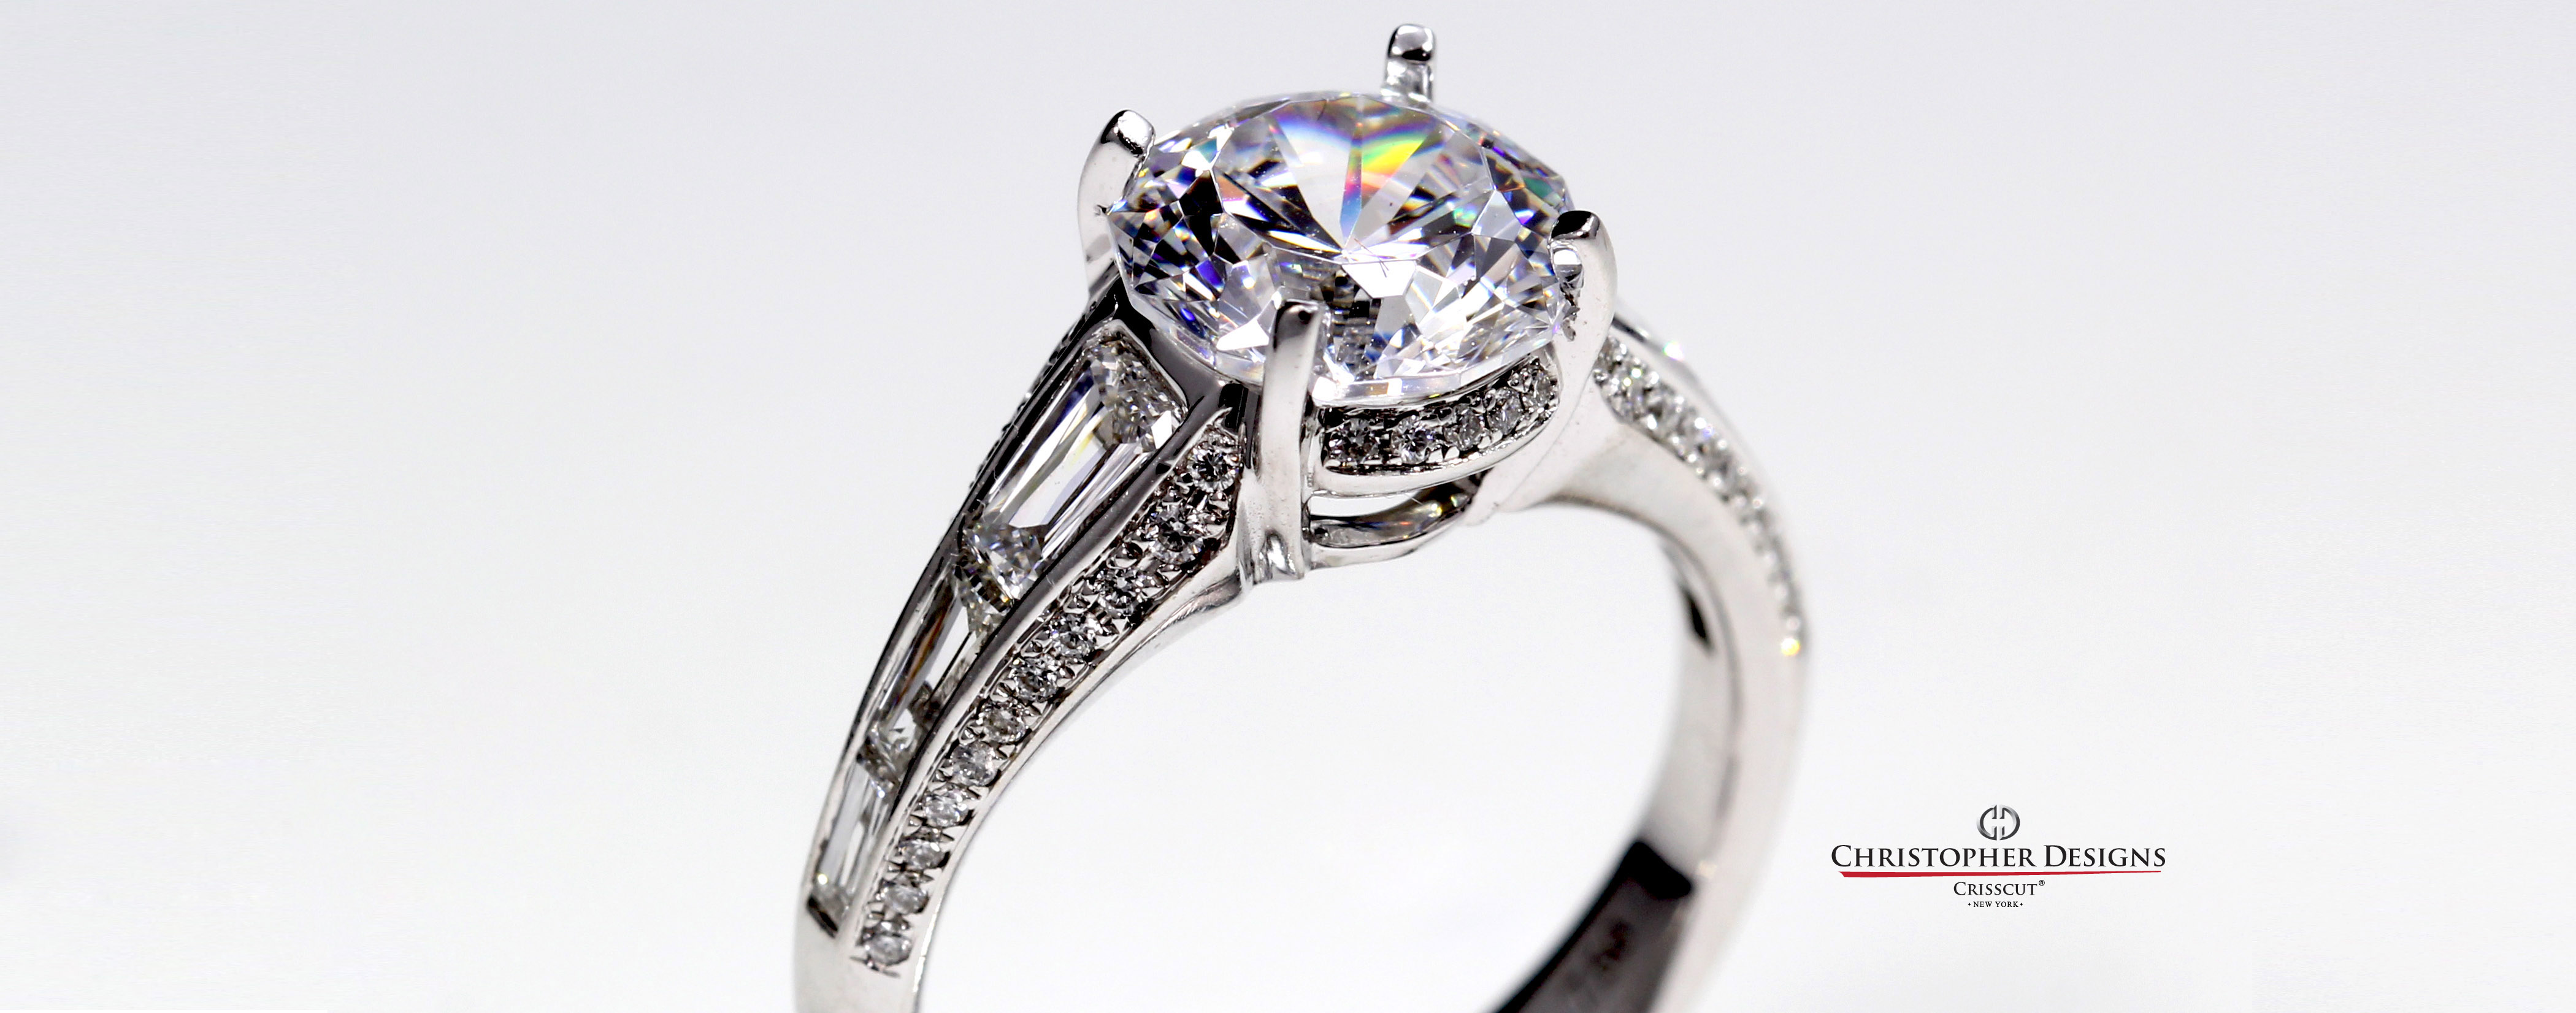 Christopher Designs Ring